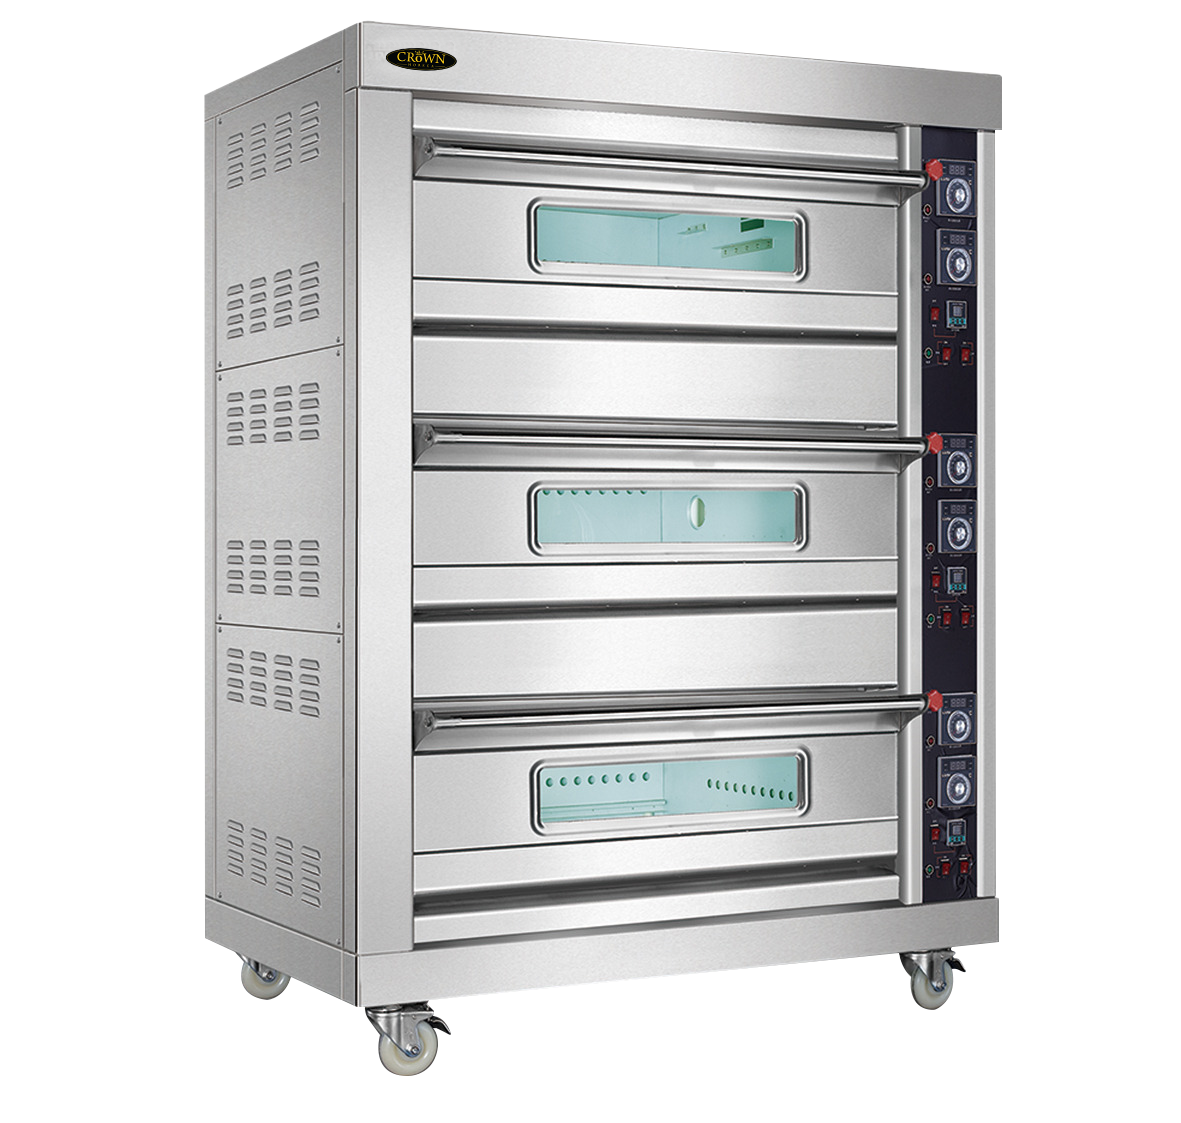 new oven3